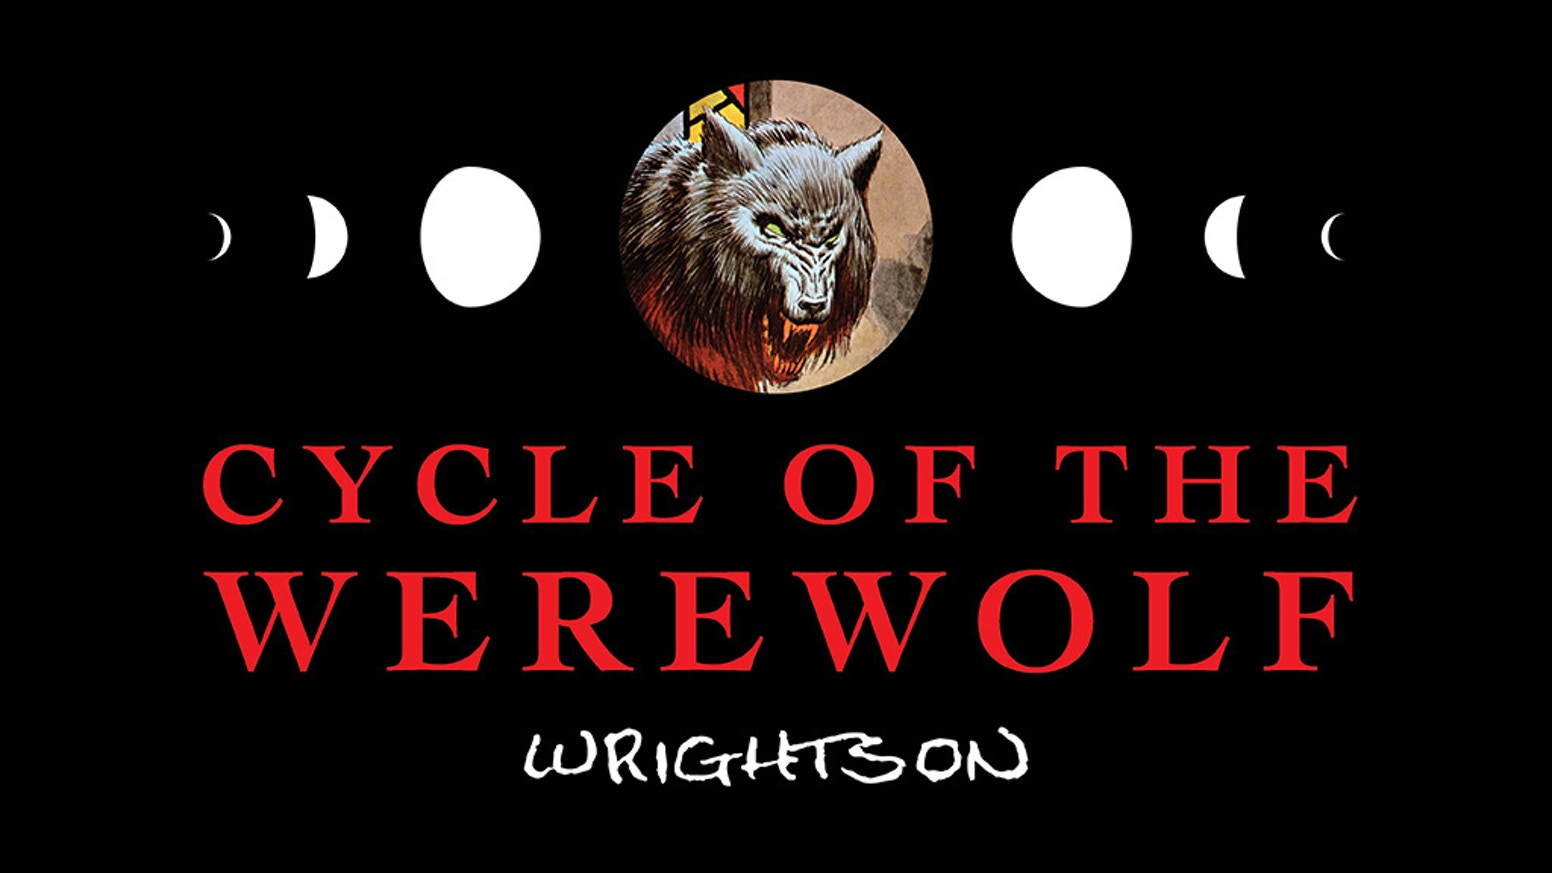 A limited edition fine-art portfolio of Bernie Wrightson's illustrations from Cycle of the Werewolf written by Stephen King!